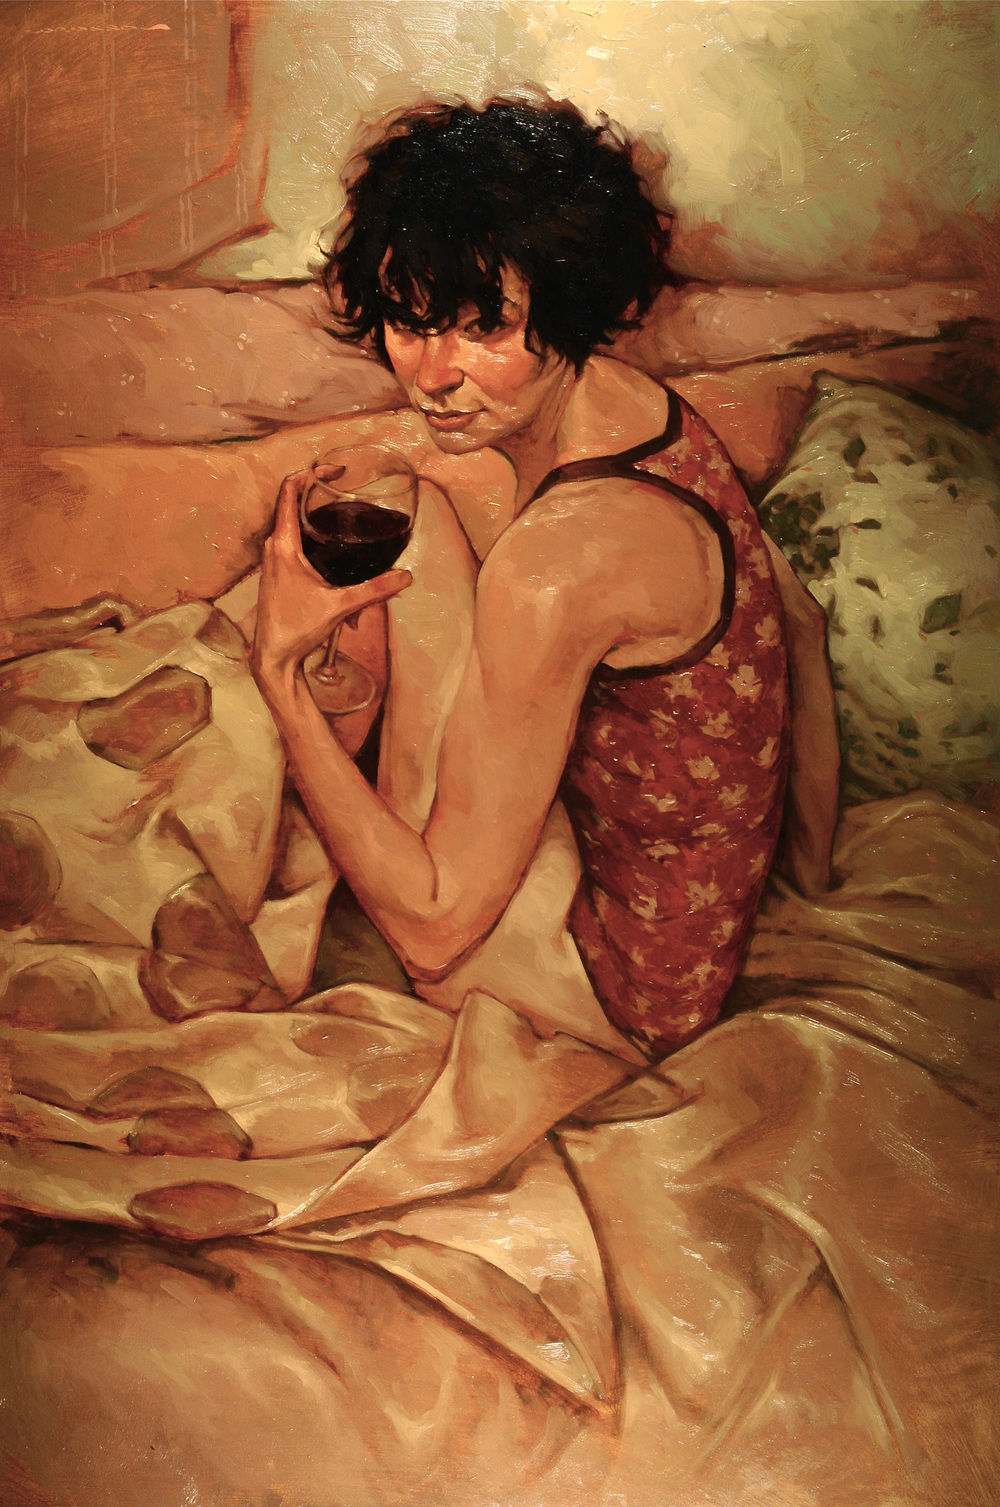 A Glass of Wine Before Bed  36x24 - SOLD